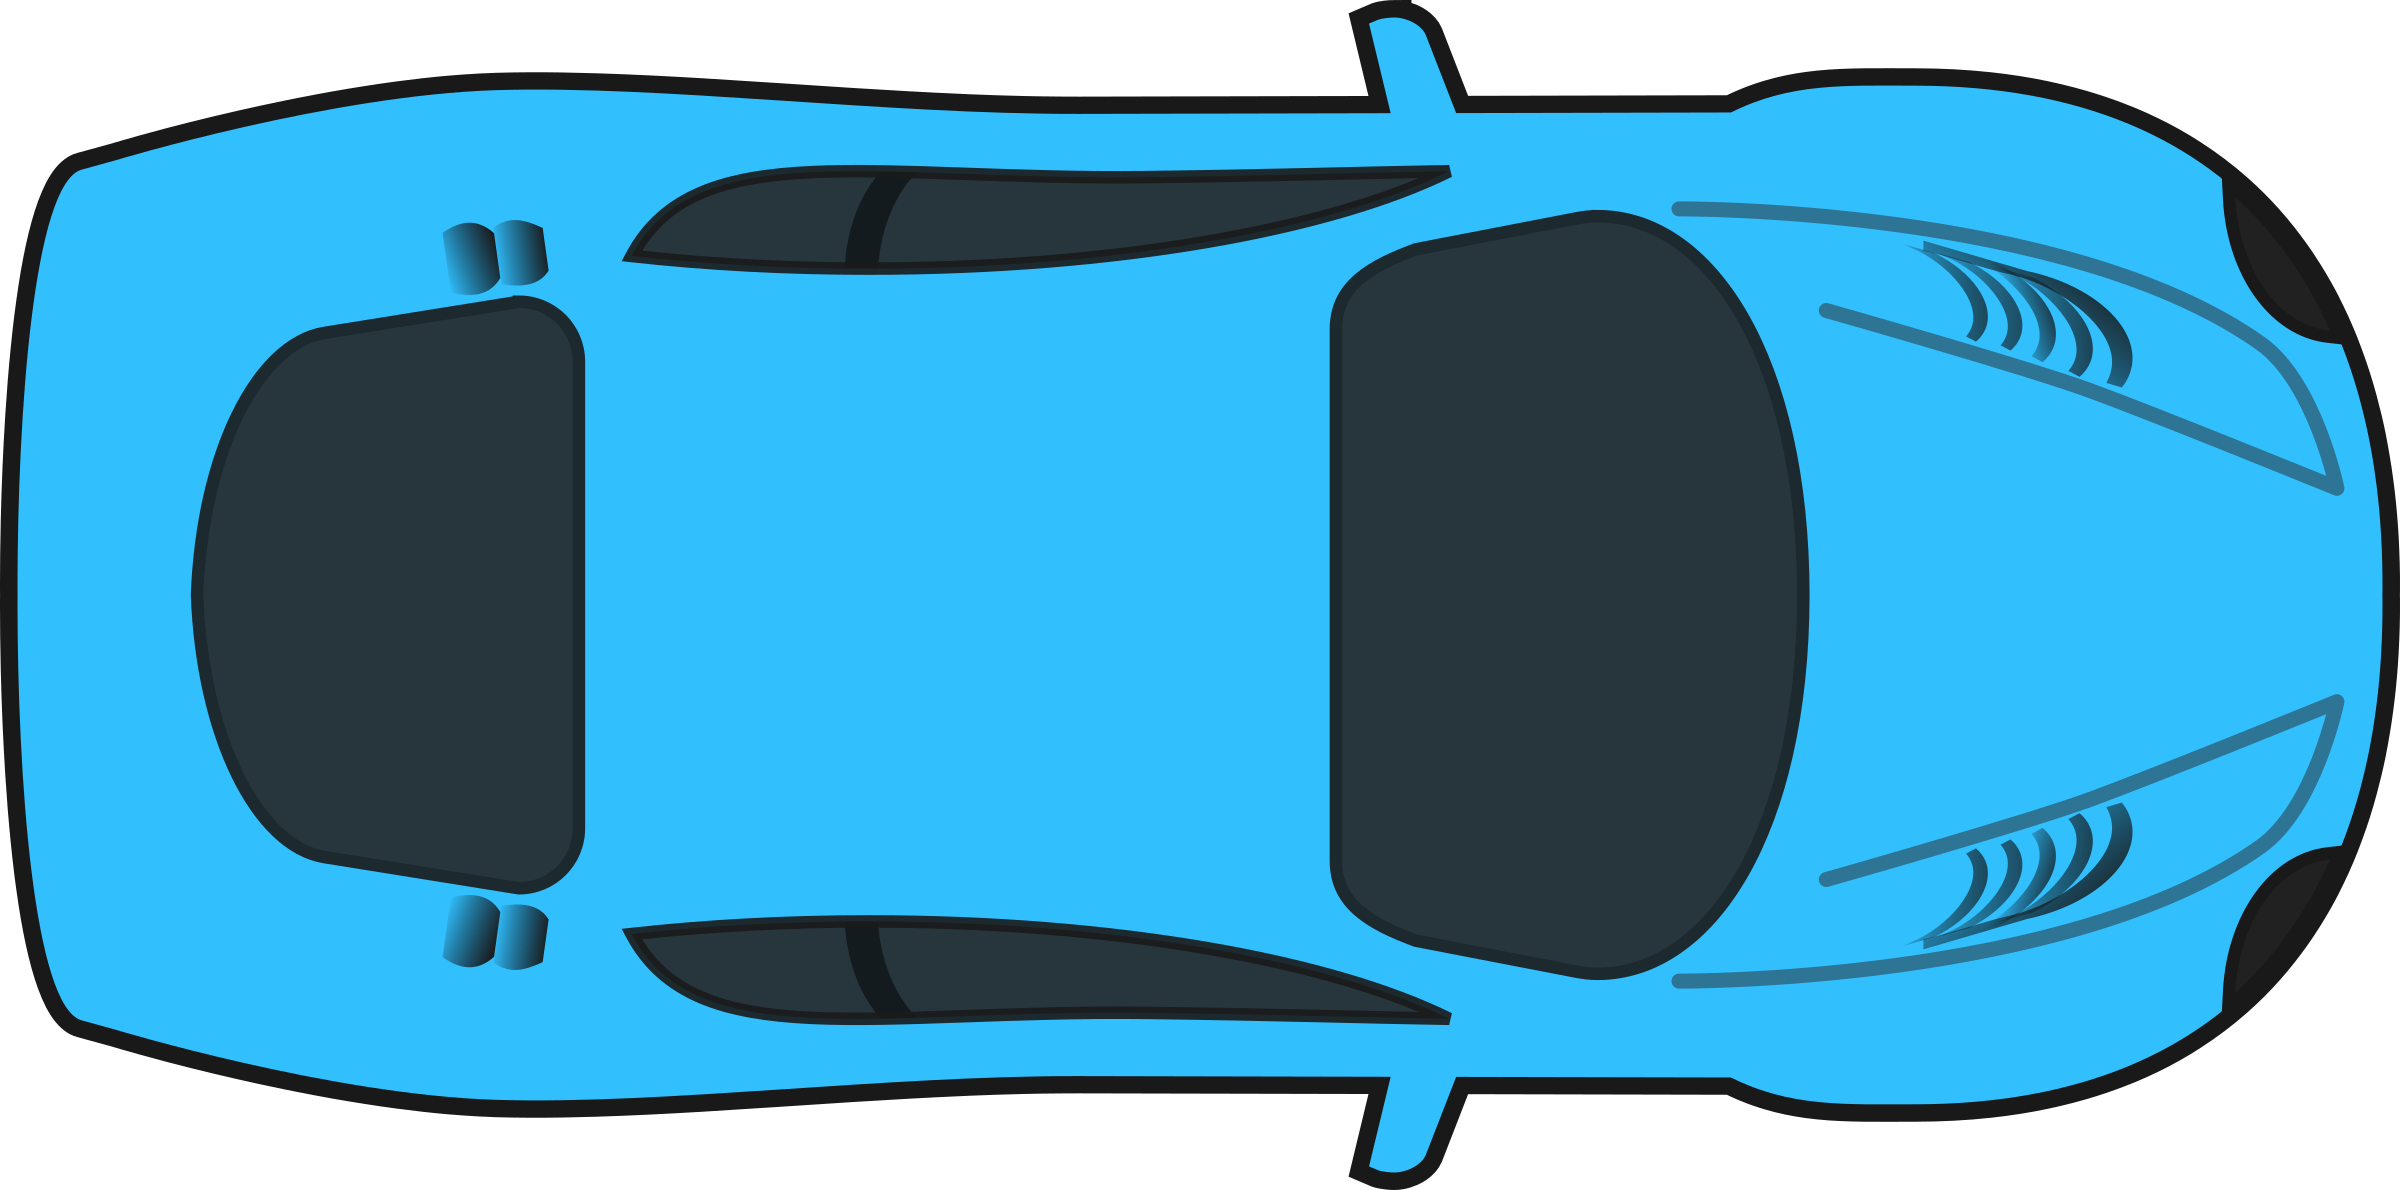 banner royalty free library Cars clipart plan. Blue racing car top.